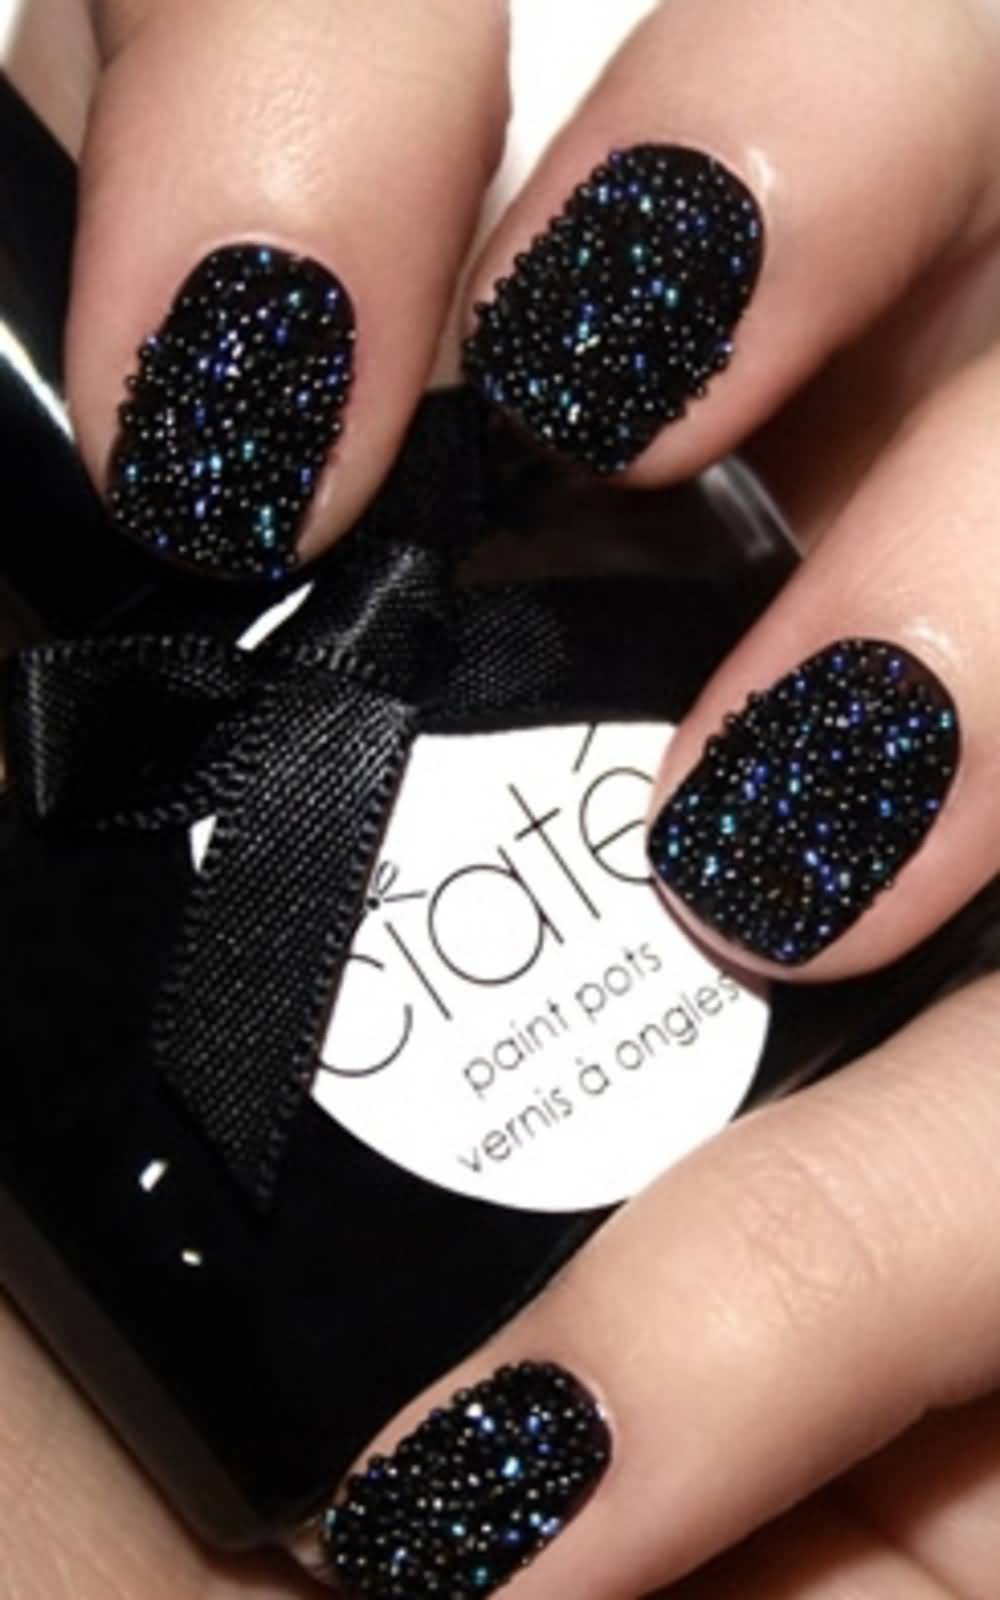 caviar-nail-polish4 +15 Hottest Caviar Manicure Creative Ideas to Apply in 2020